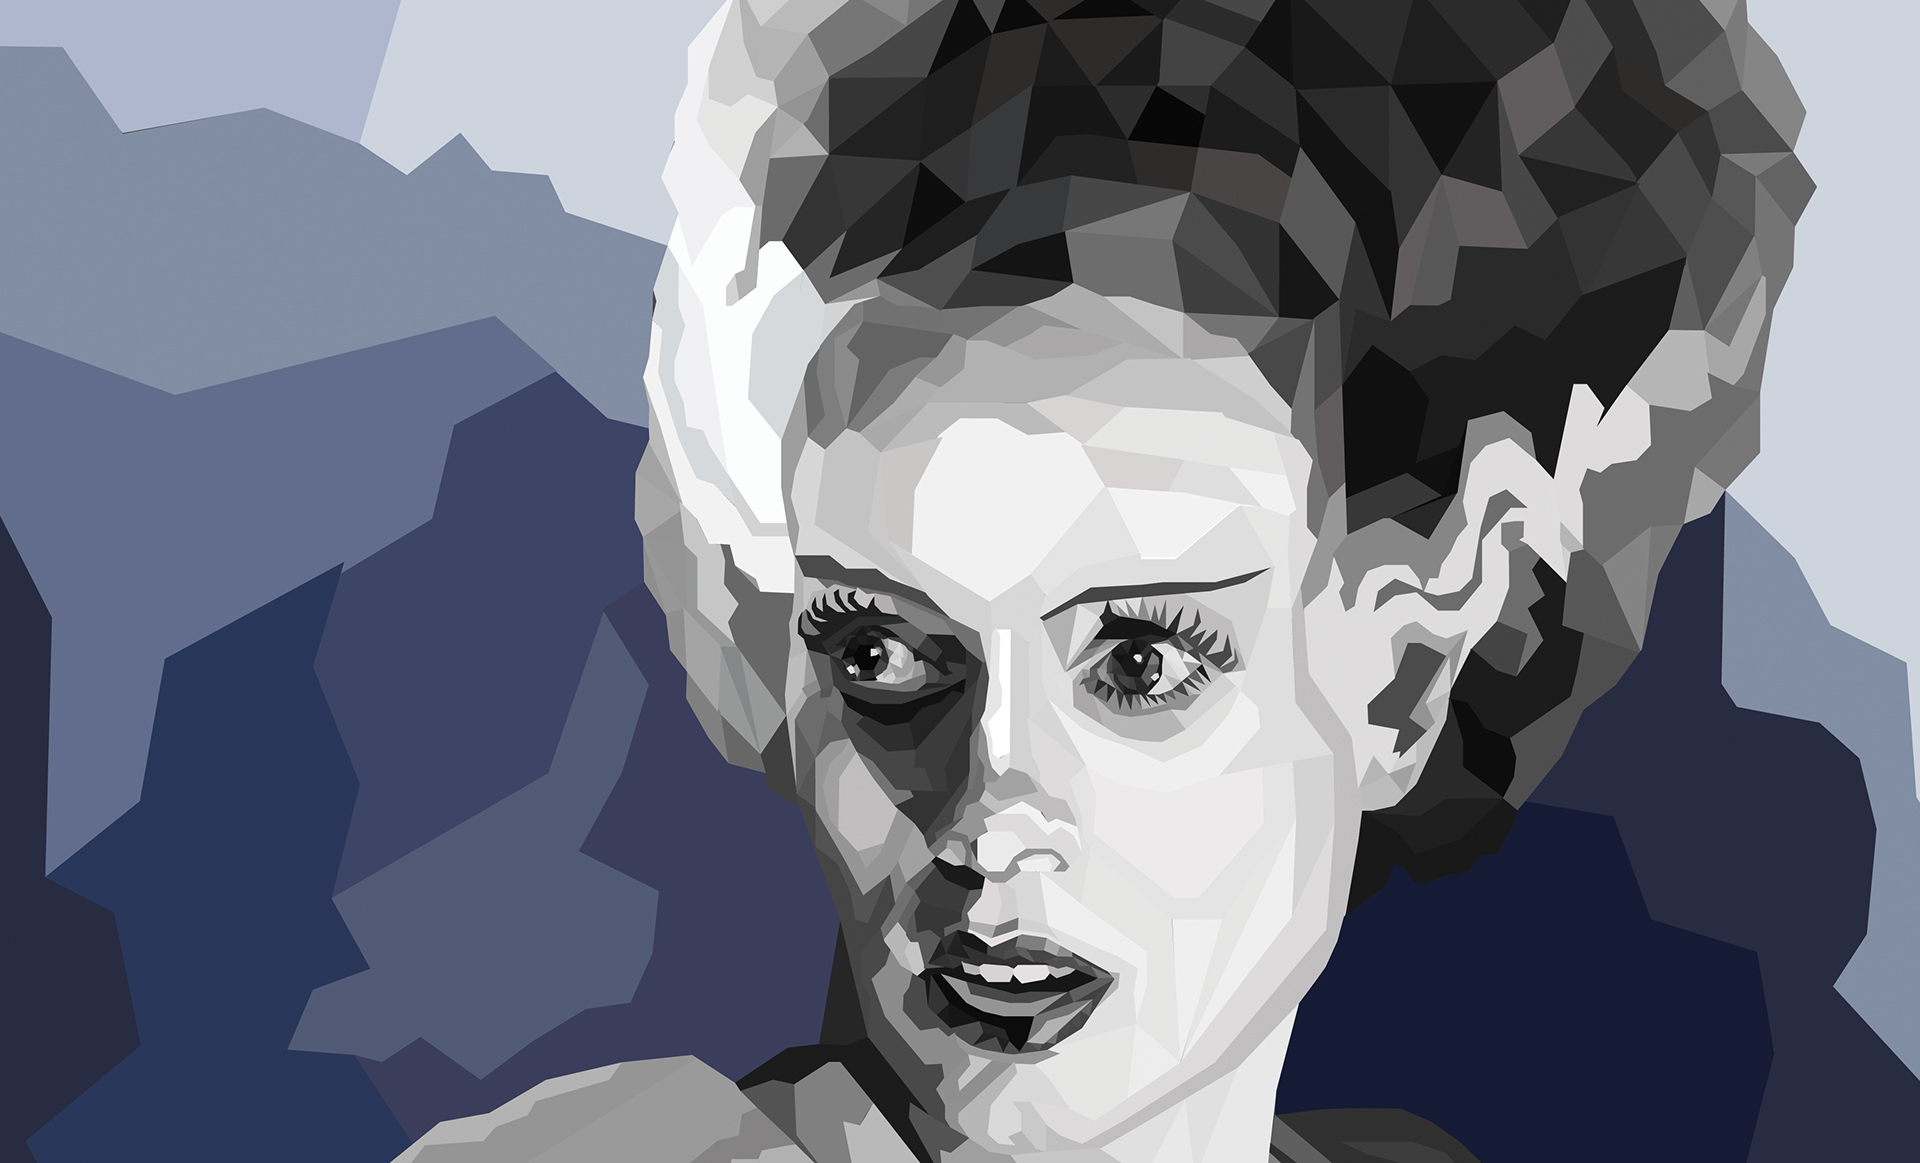 digital low poly illustration